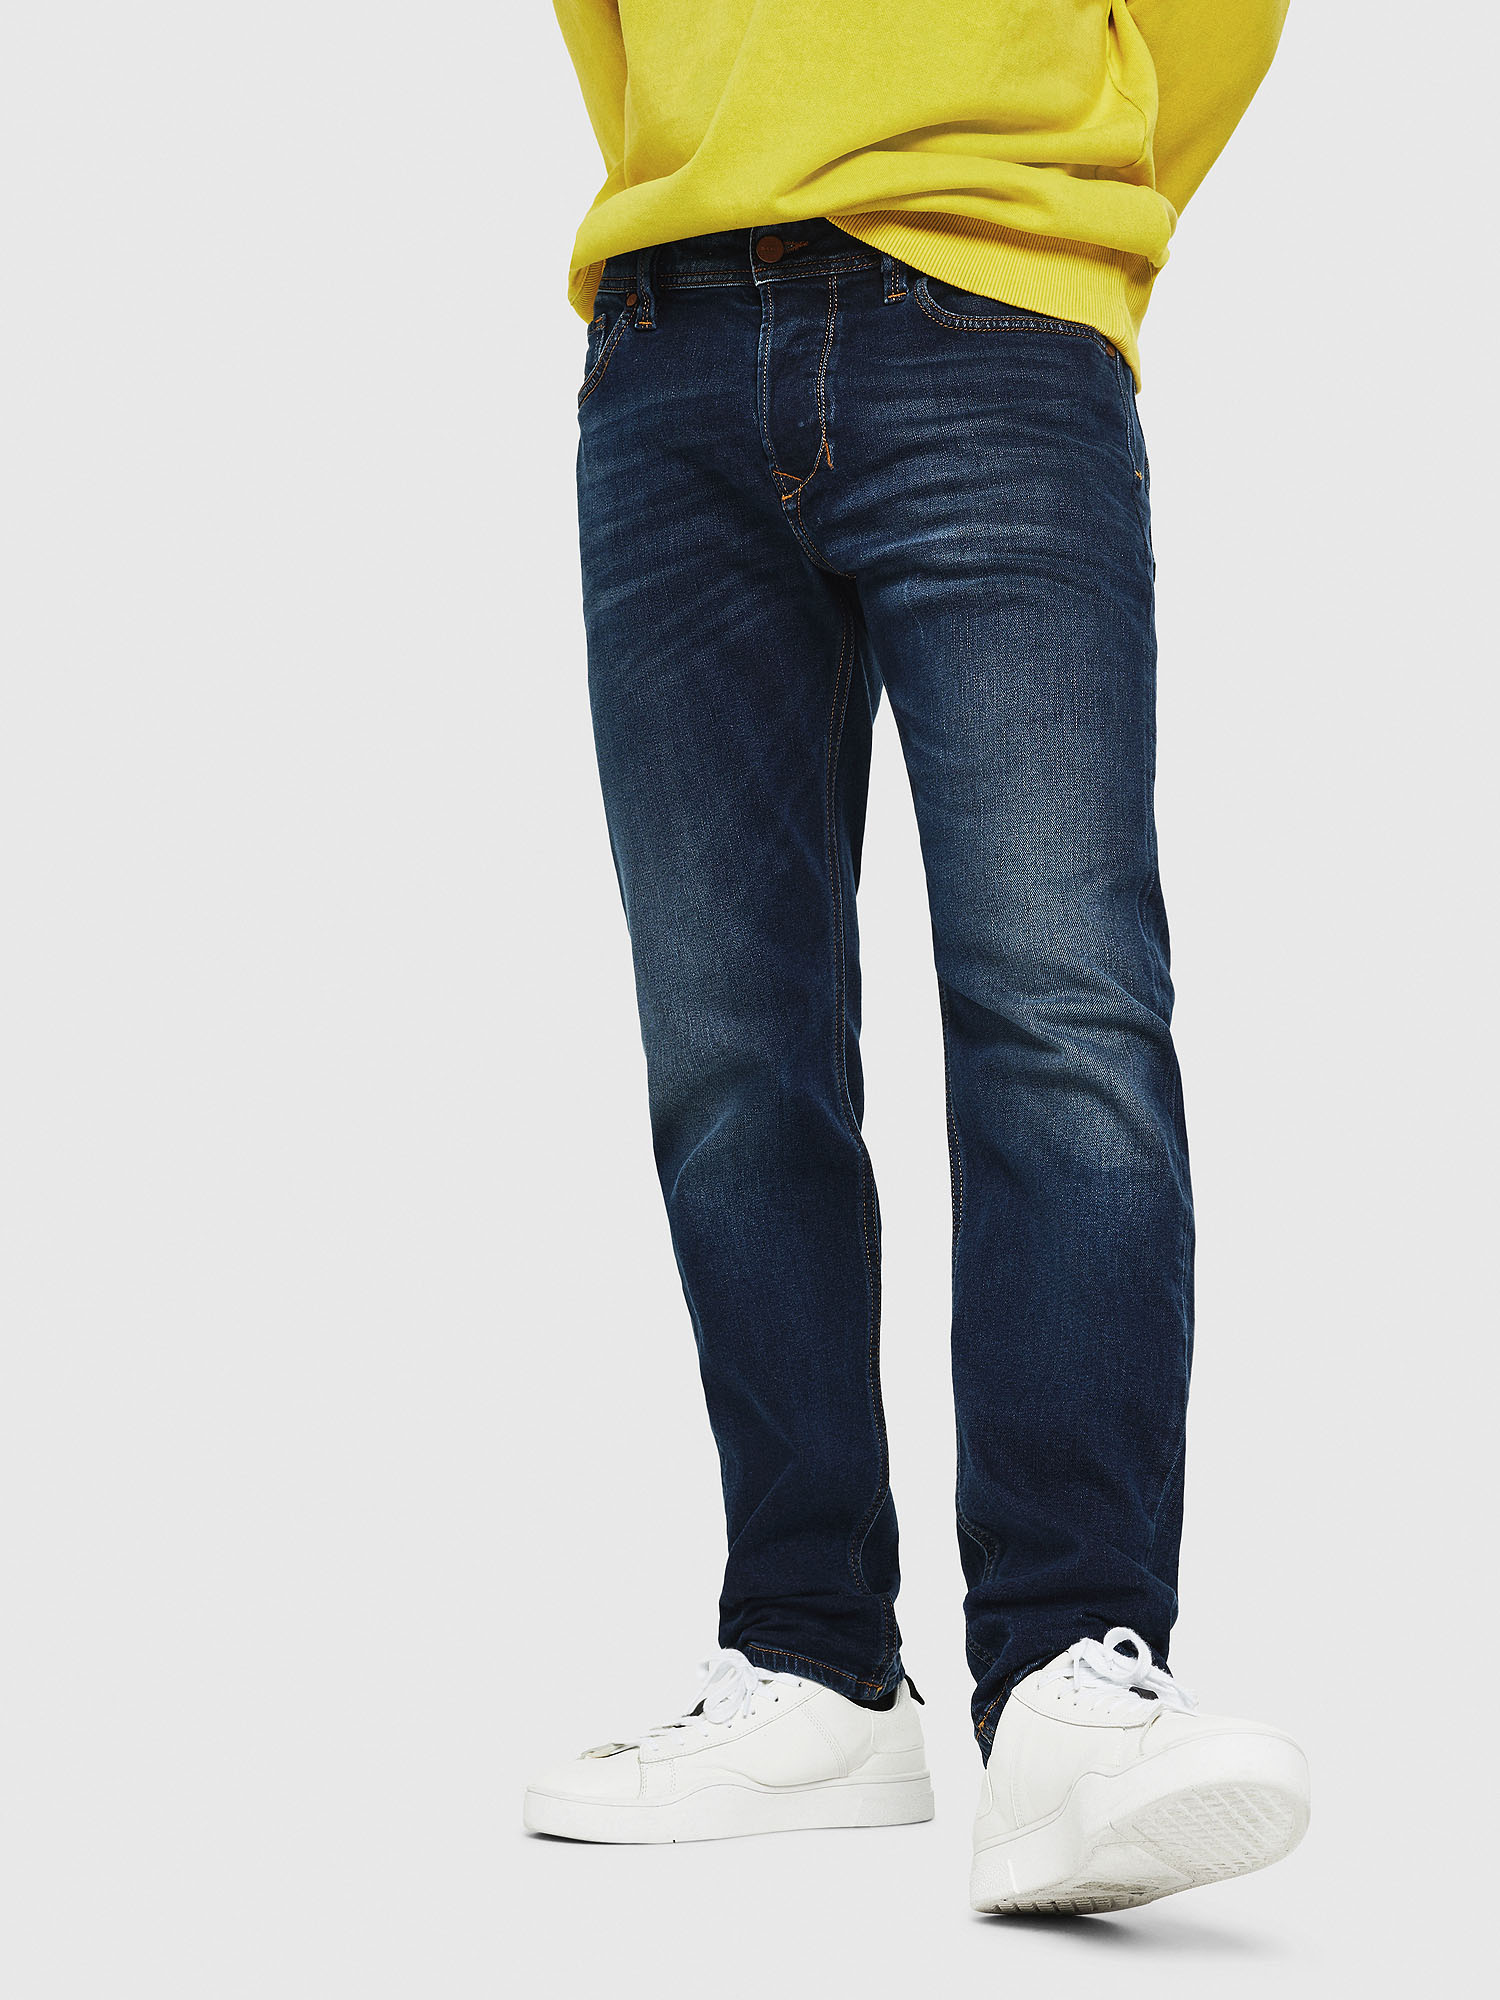 Diesel - Larkee-Beex 087AS,  - Jeans - Image 1